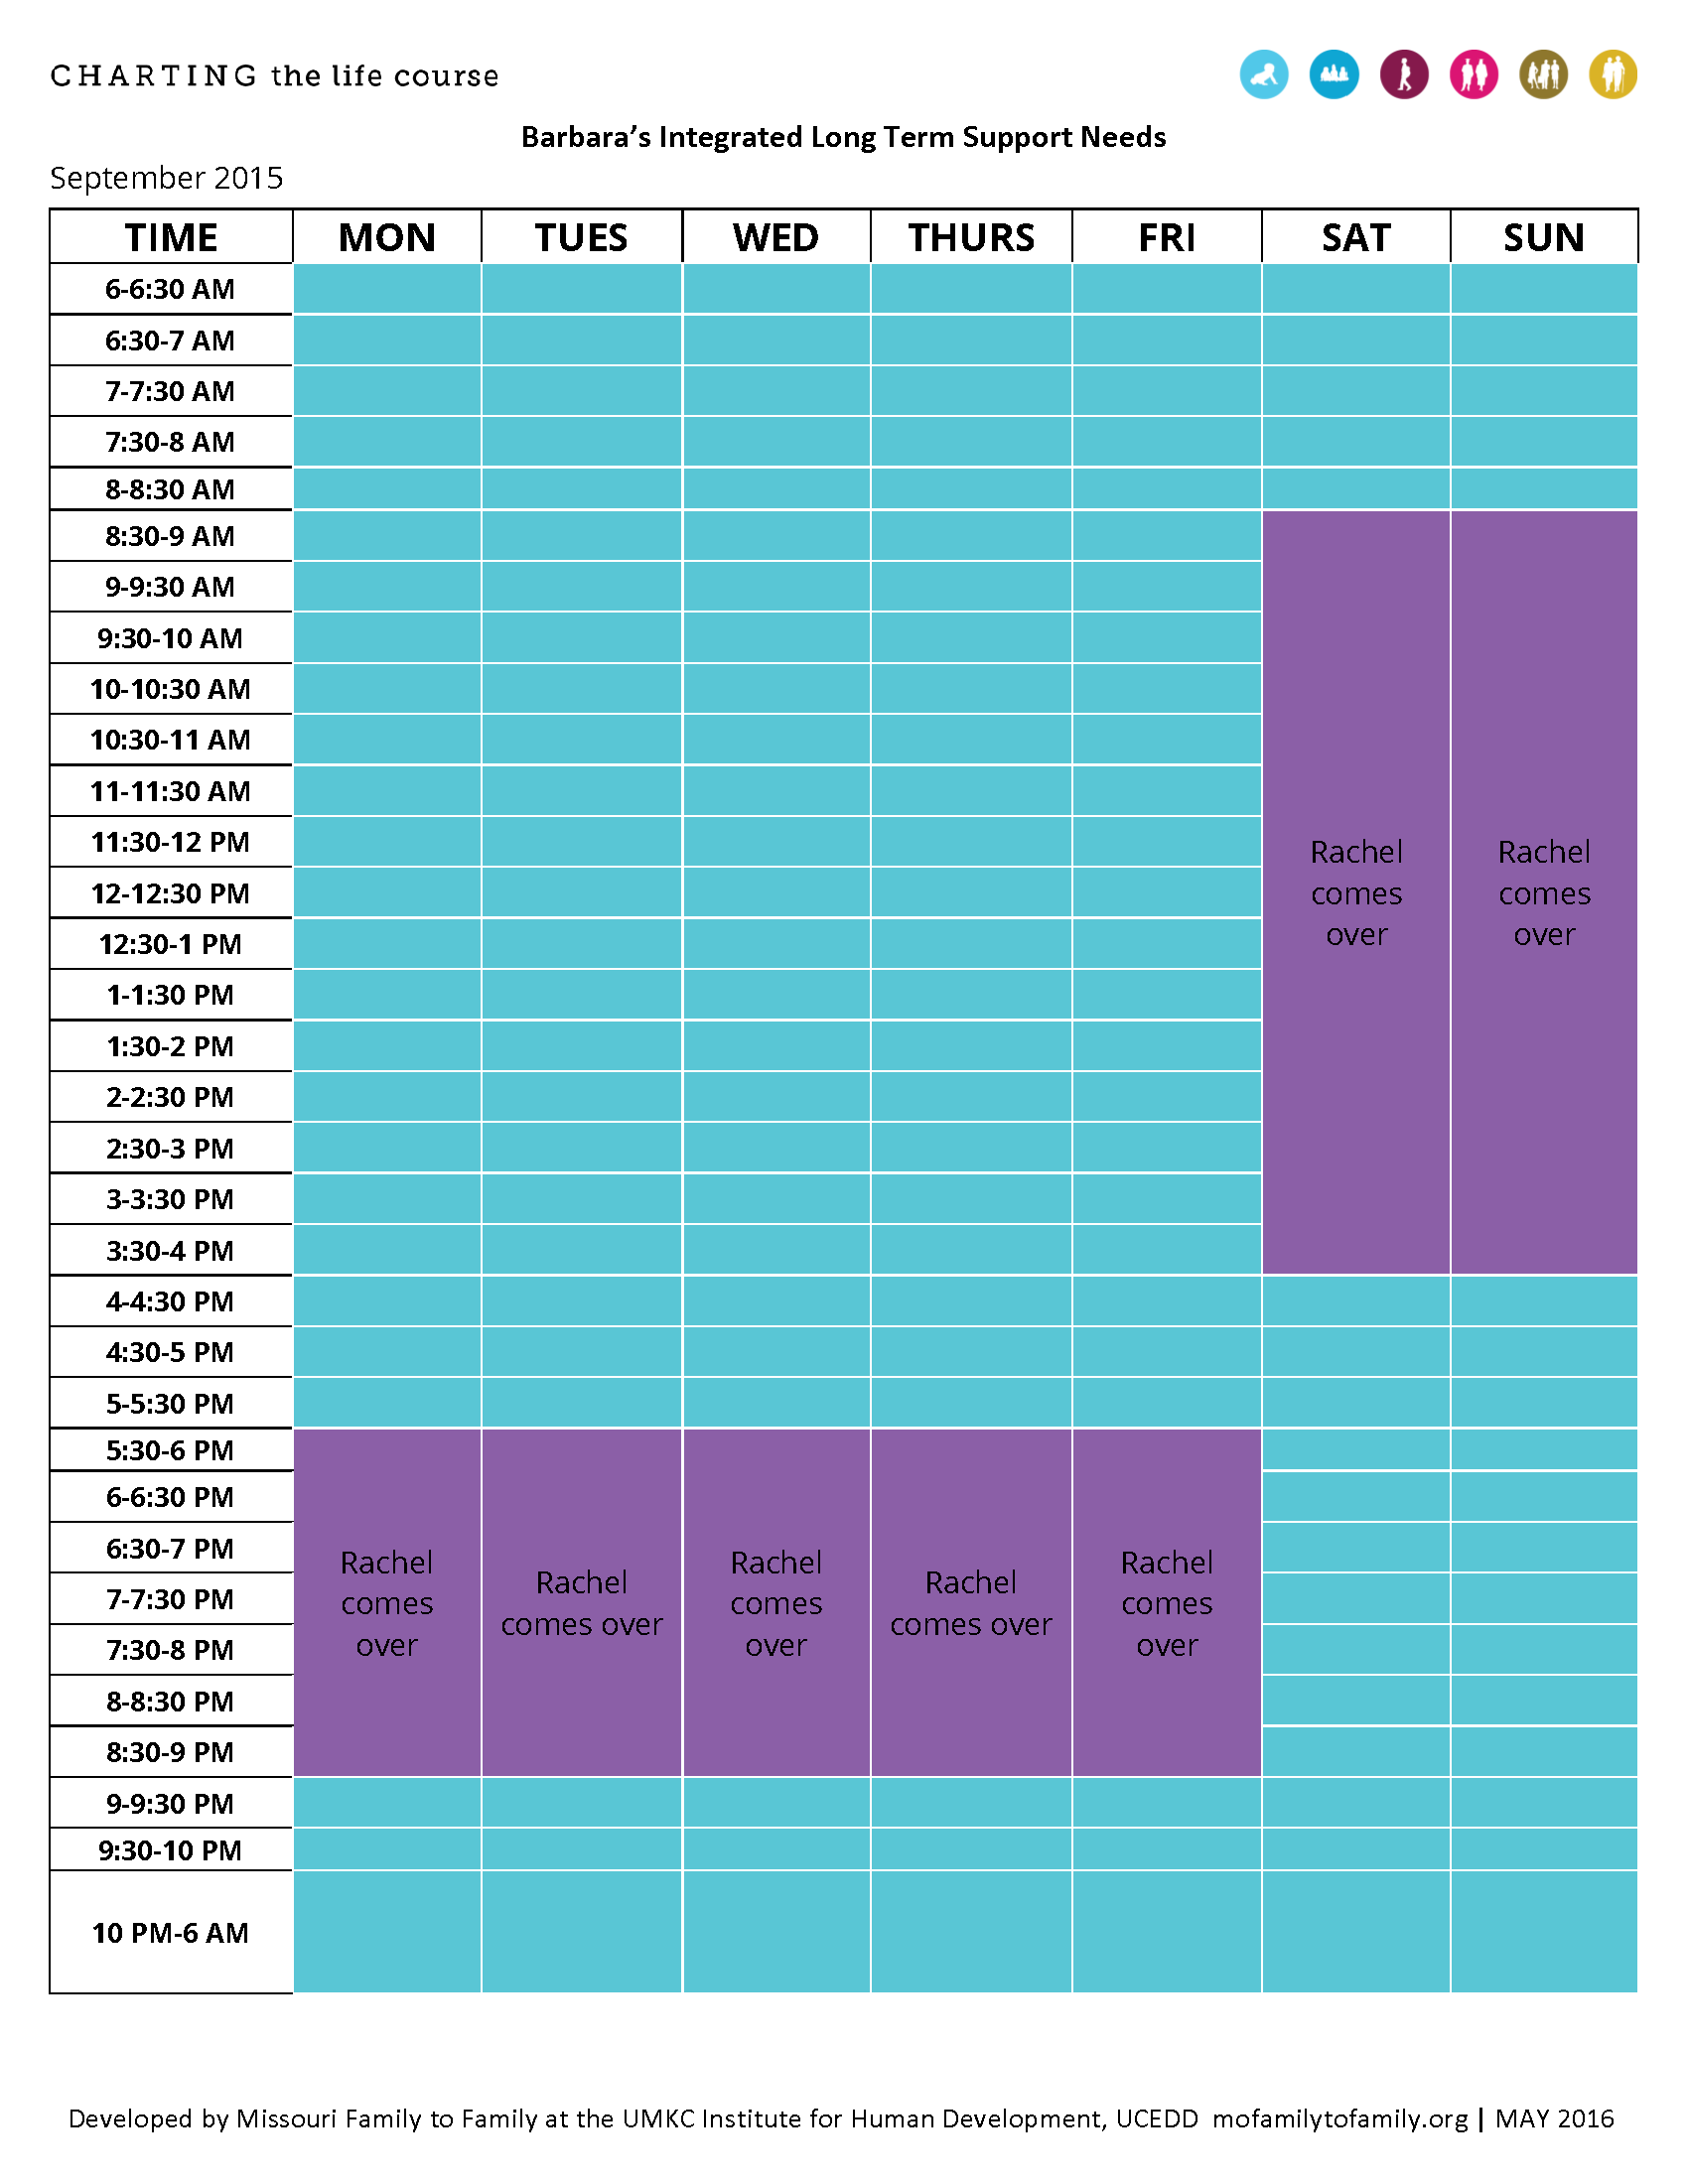 Graphic: Screenshot of Barbara's Integrated Long Term Support Needs Schedule before Charting the LIfeCourse